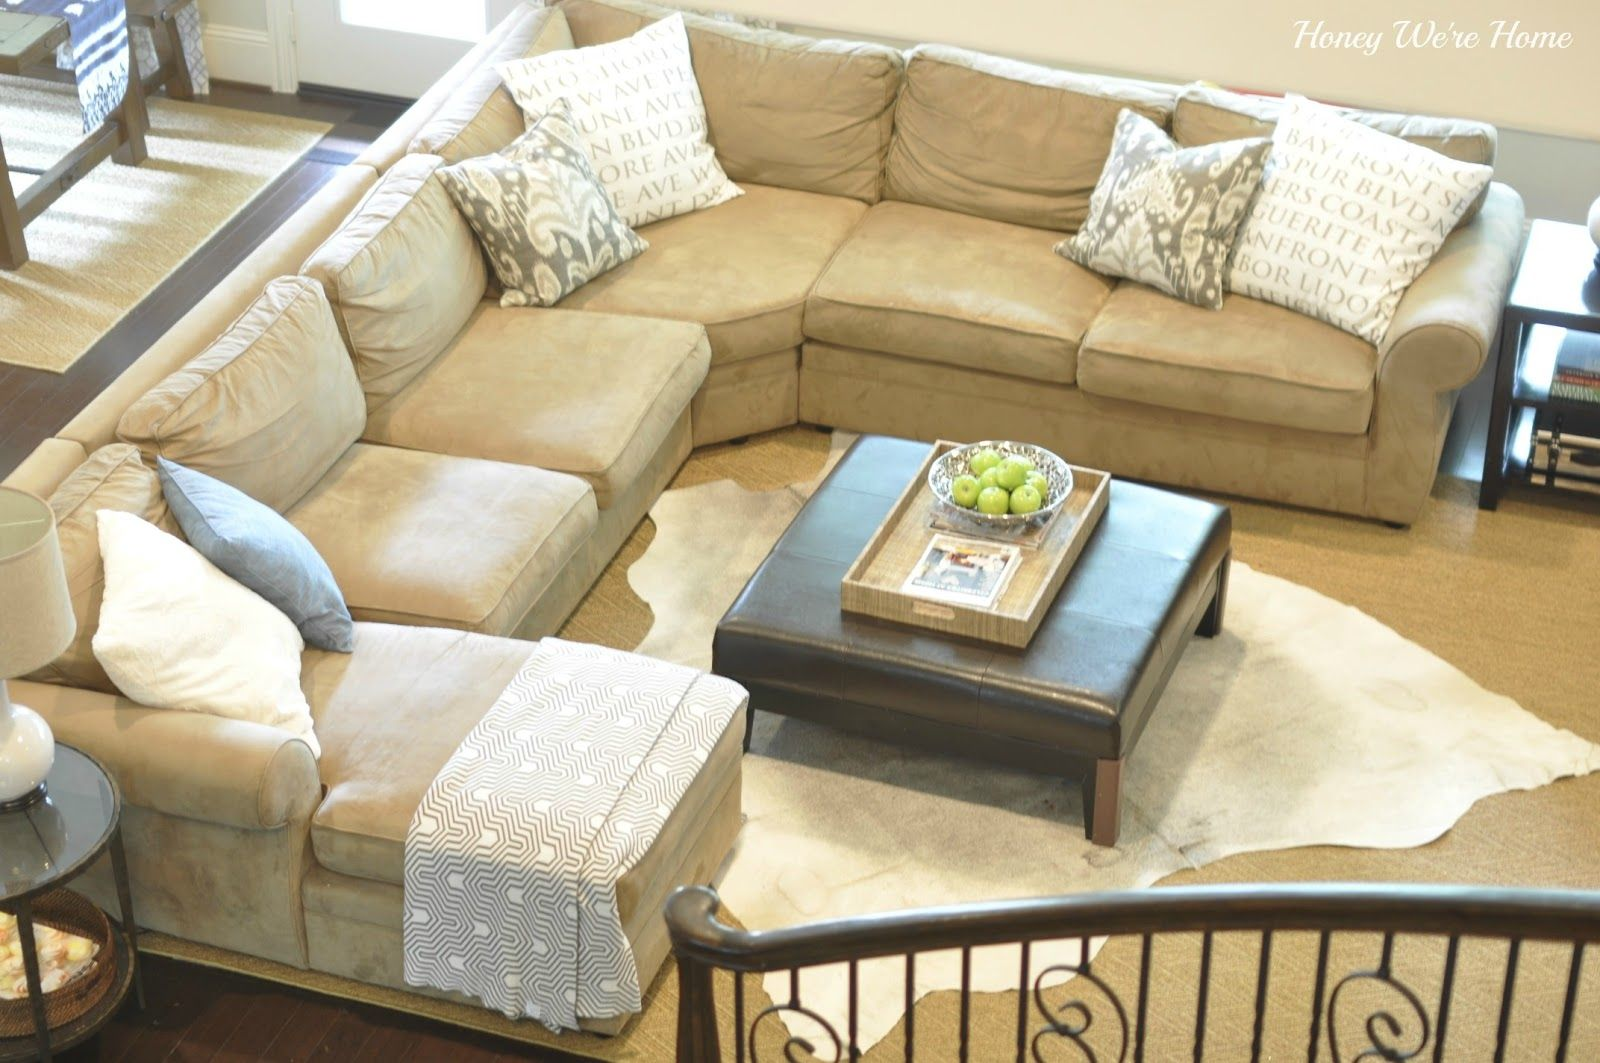 Sectional Couch Via Honeywe Rehome Living Room Rug Placement Home Rugs In Living Room #rug #placement #living #room #sectional